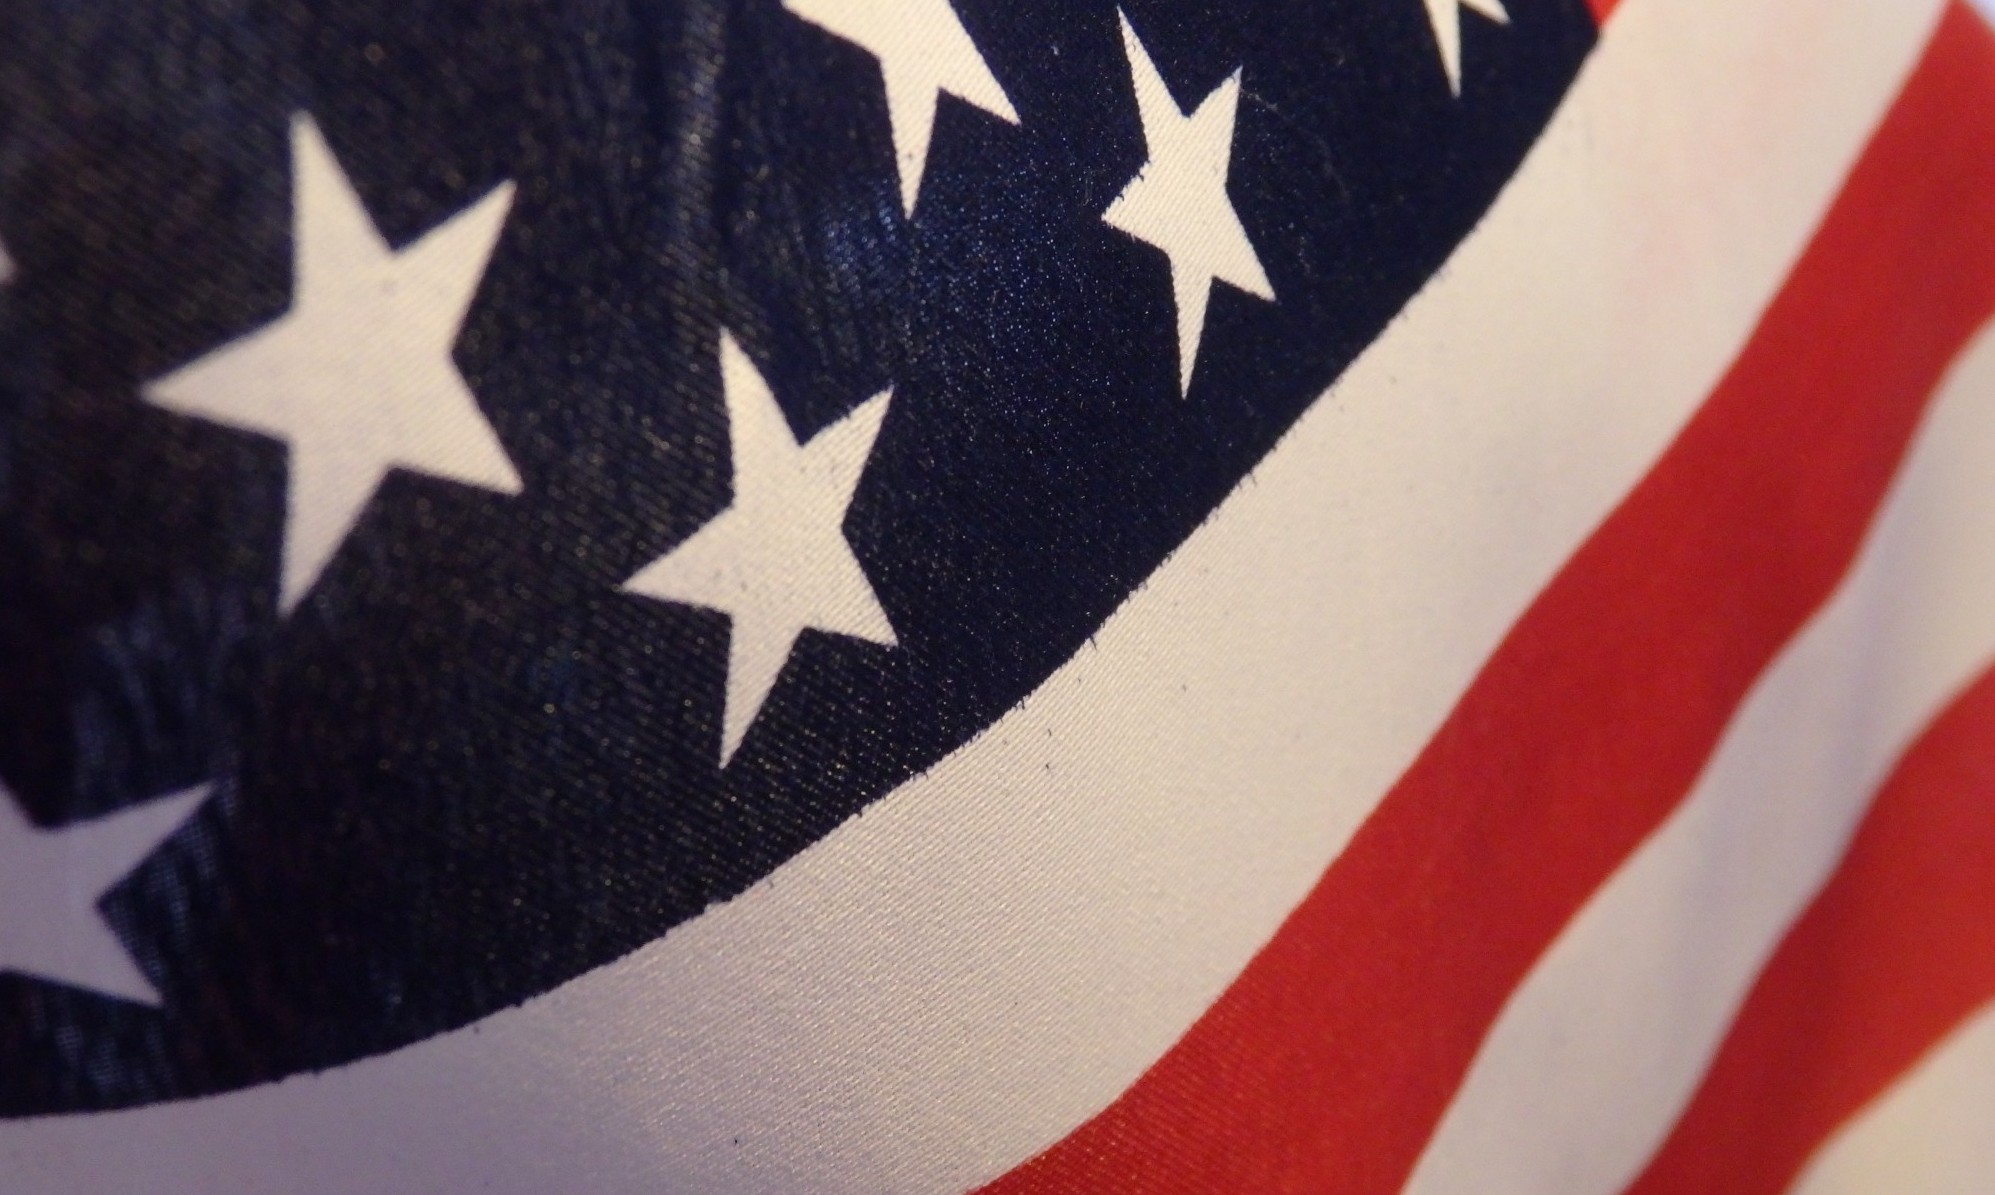 close-up of the American flag, representing the American Dream